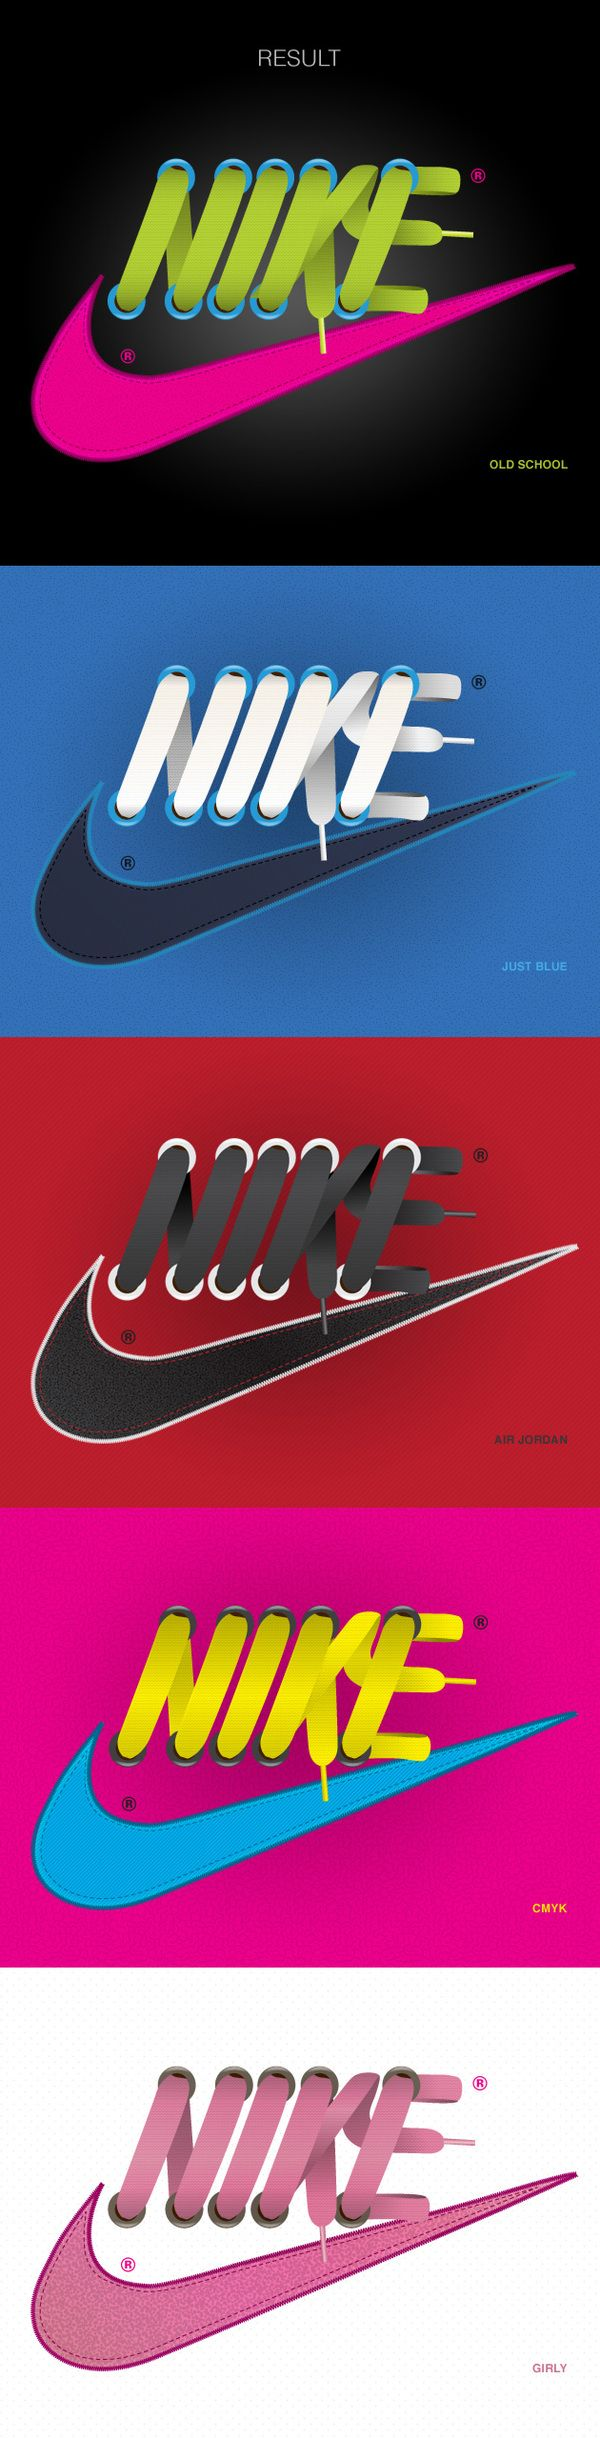 Designer integrates the famous Nike logo with shoelaces. Awesome concept!